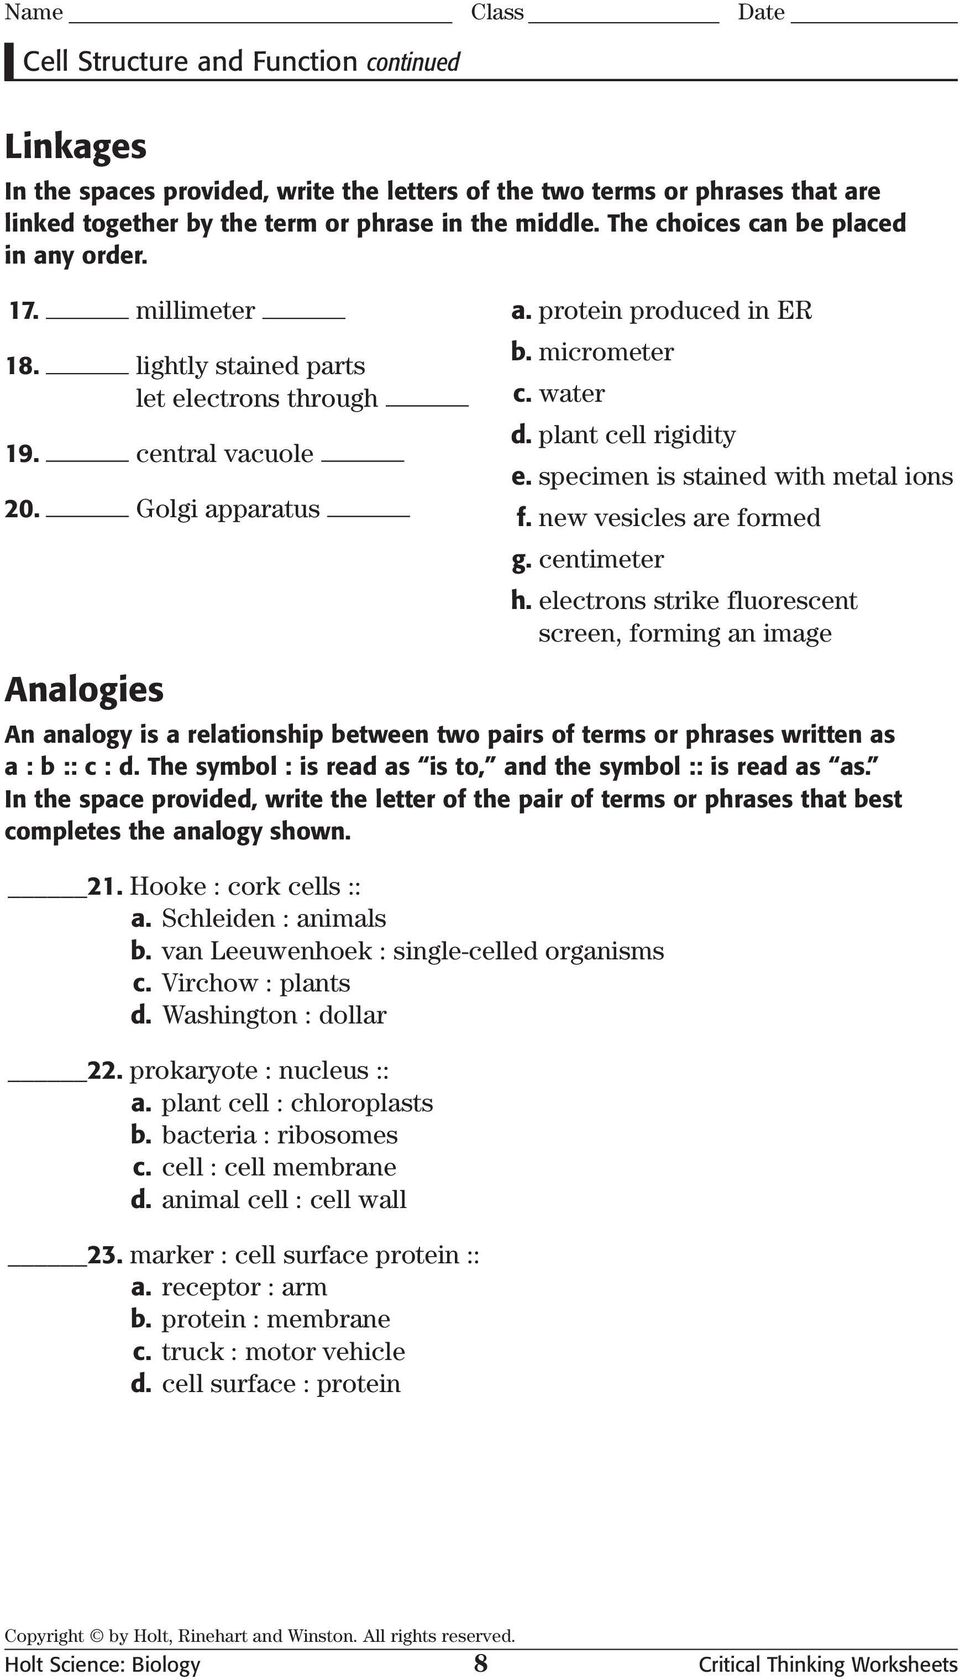 Worksheet Holt Biology Worksheets Grass Fedjp Worksheet